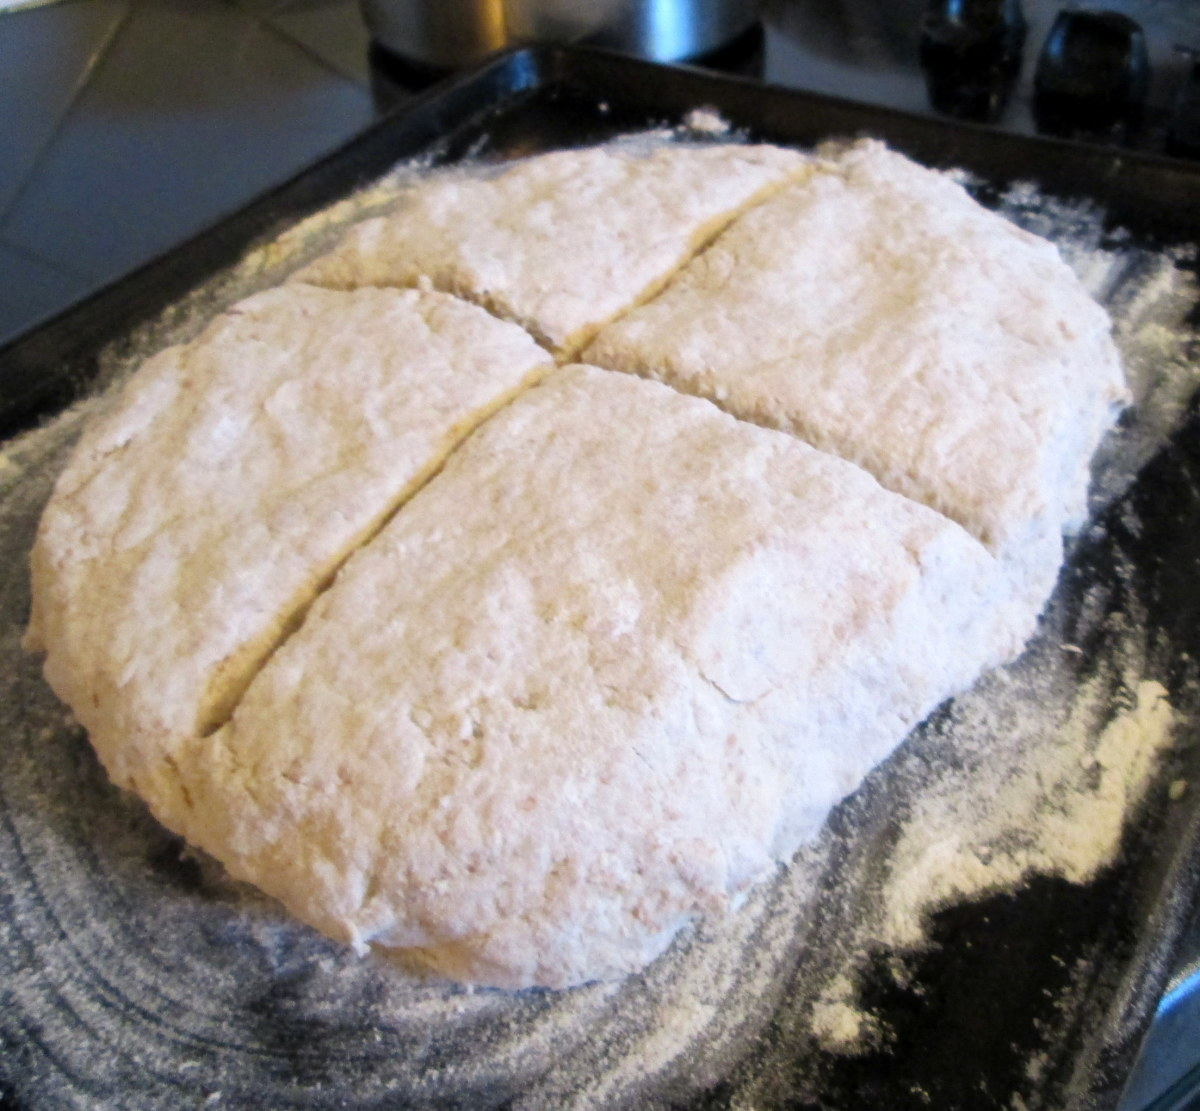 Make the cross: Using a large knife, cut down and across to make a deep cut in the dough.